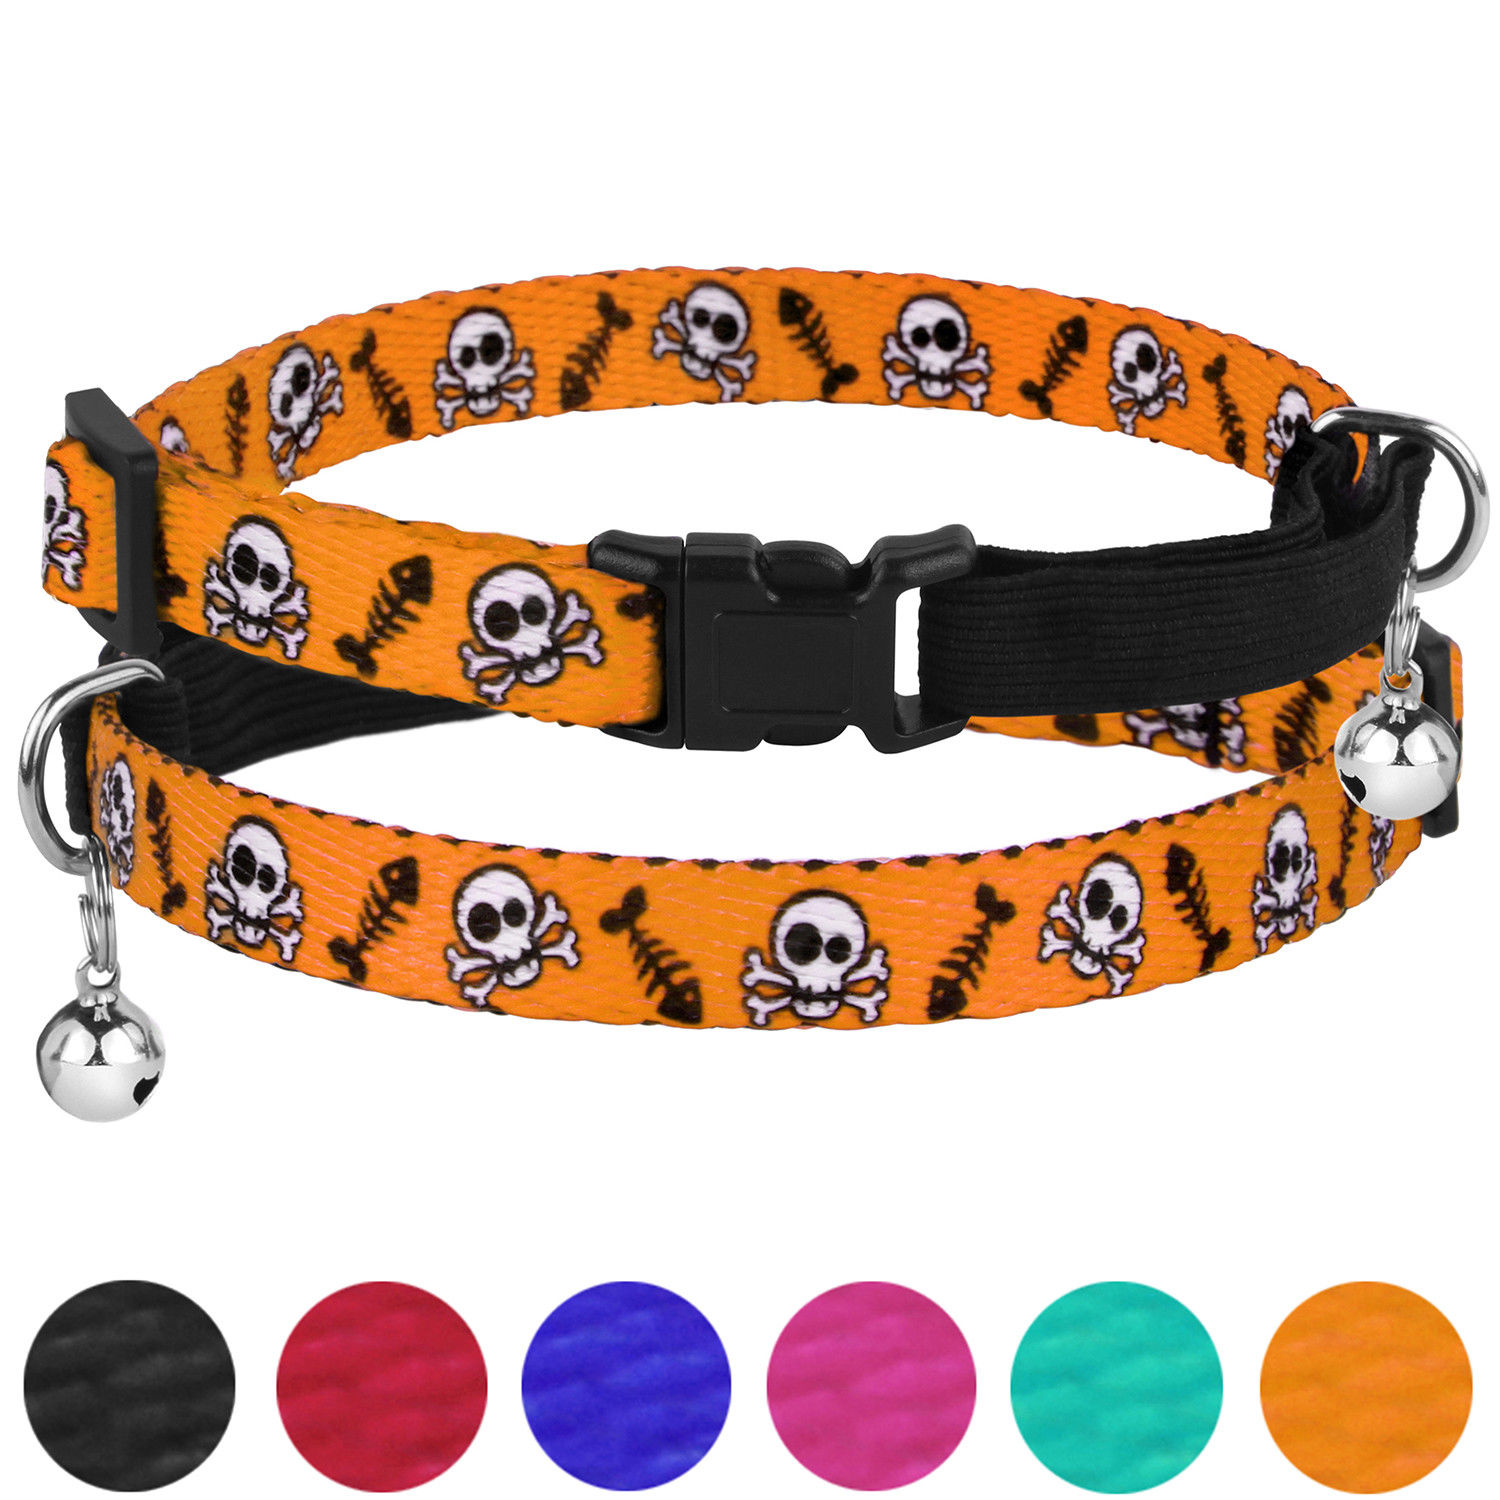 Breakaway Cat Collar Skull Print Safety Collars for Cats Kitten with Bell Elastic Strap Adjustable Size 7-11... by CollarDirect